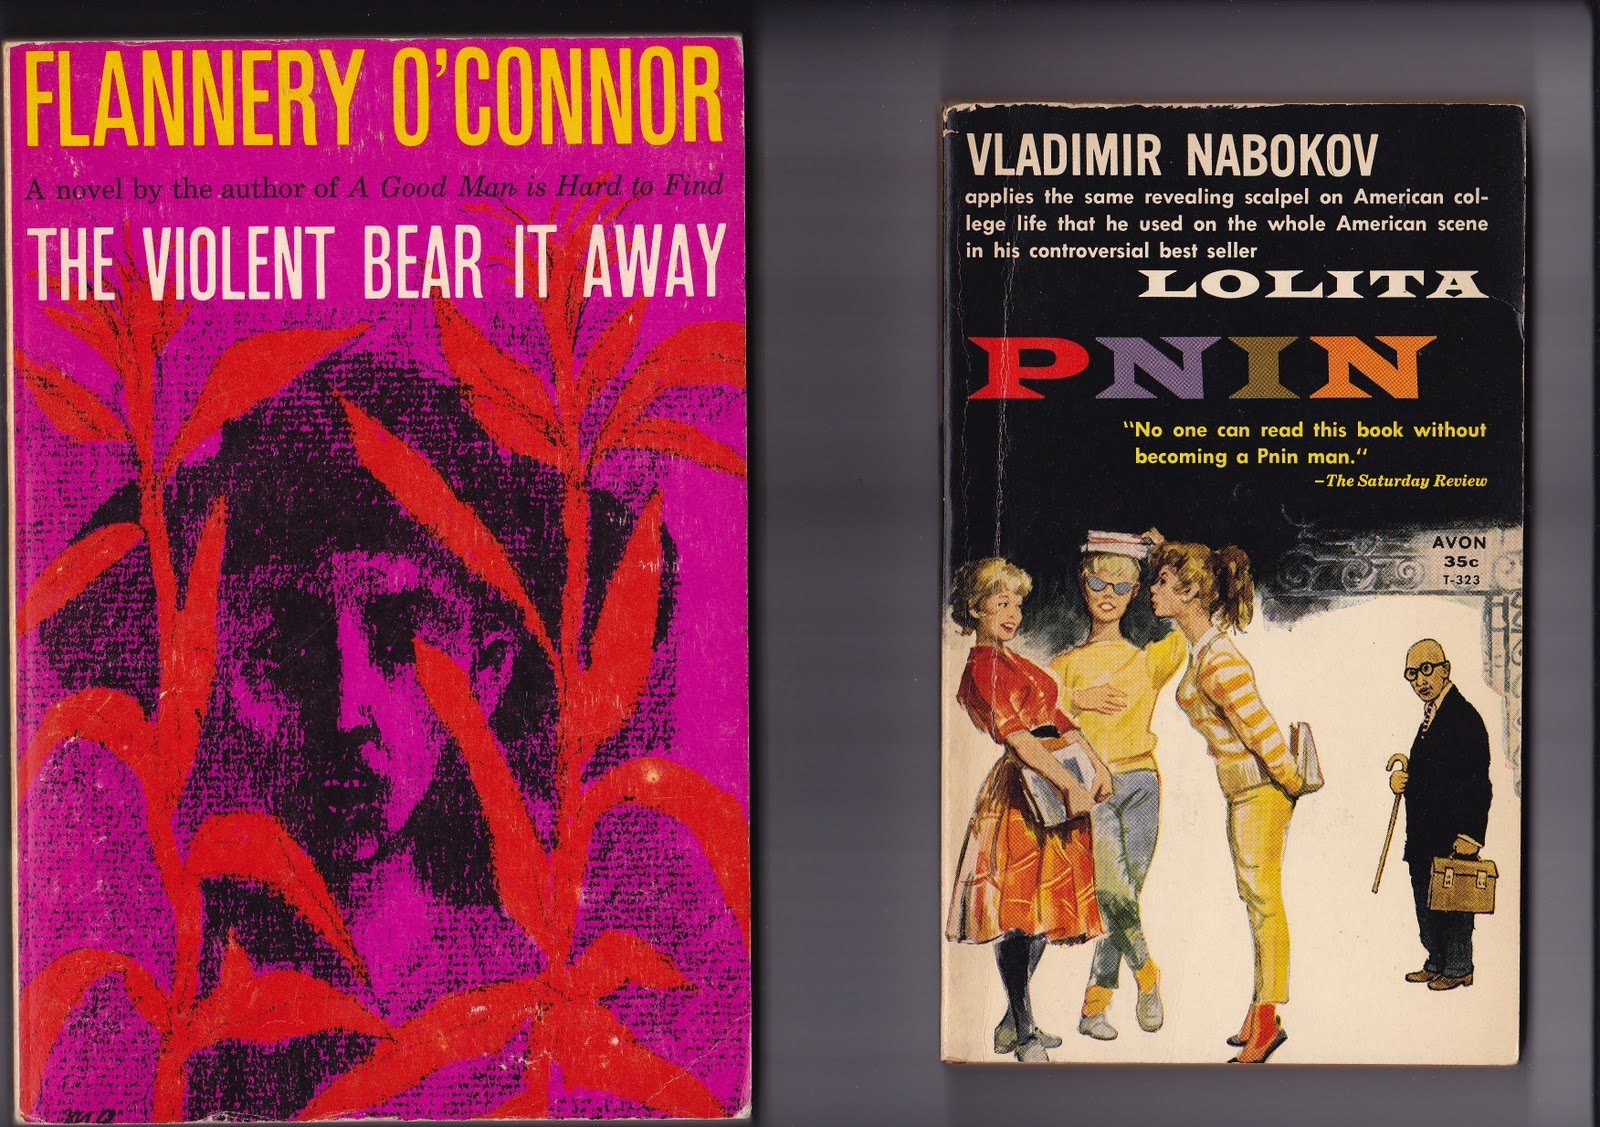 the violent bear it away good Buy the paperback book the violent bear it away by flannery o'connor at indigoca, canada's largest bookstore + get free shipping on fiction and literature books.